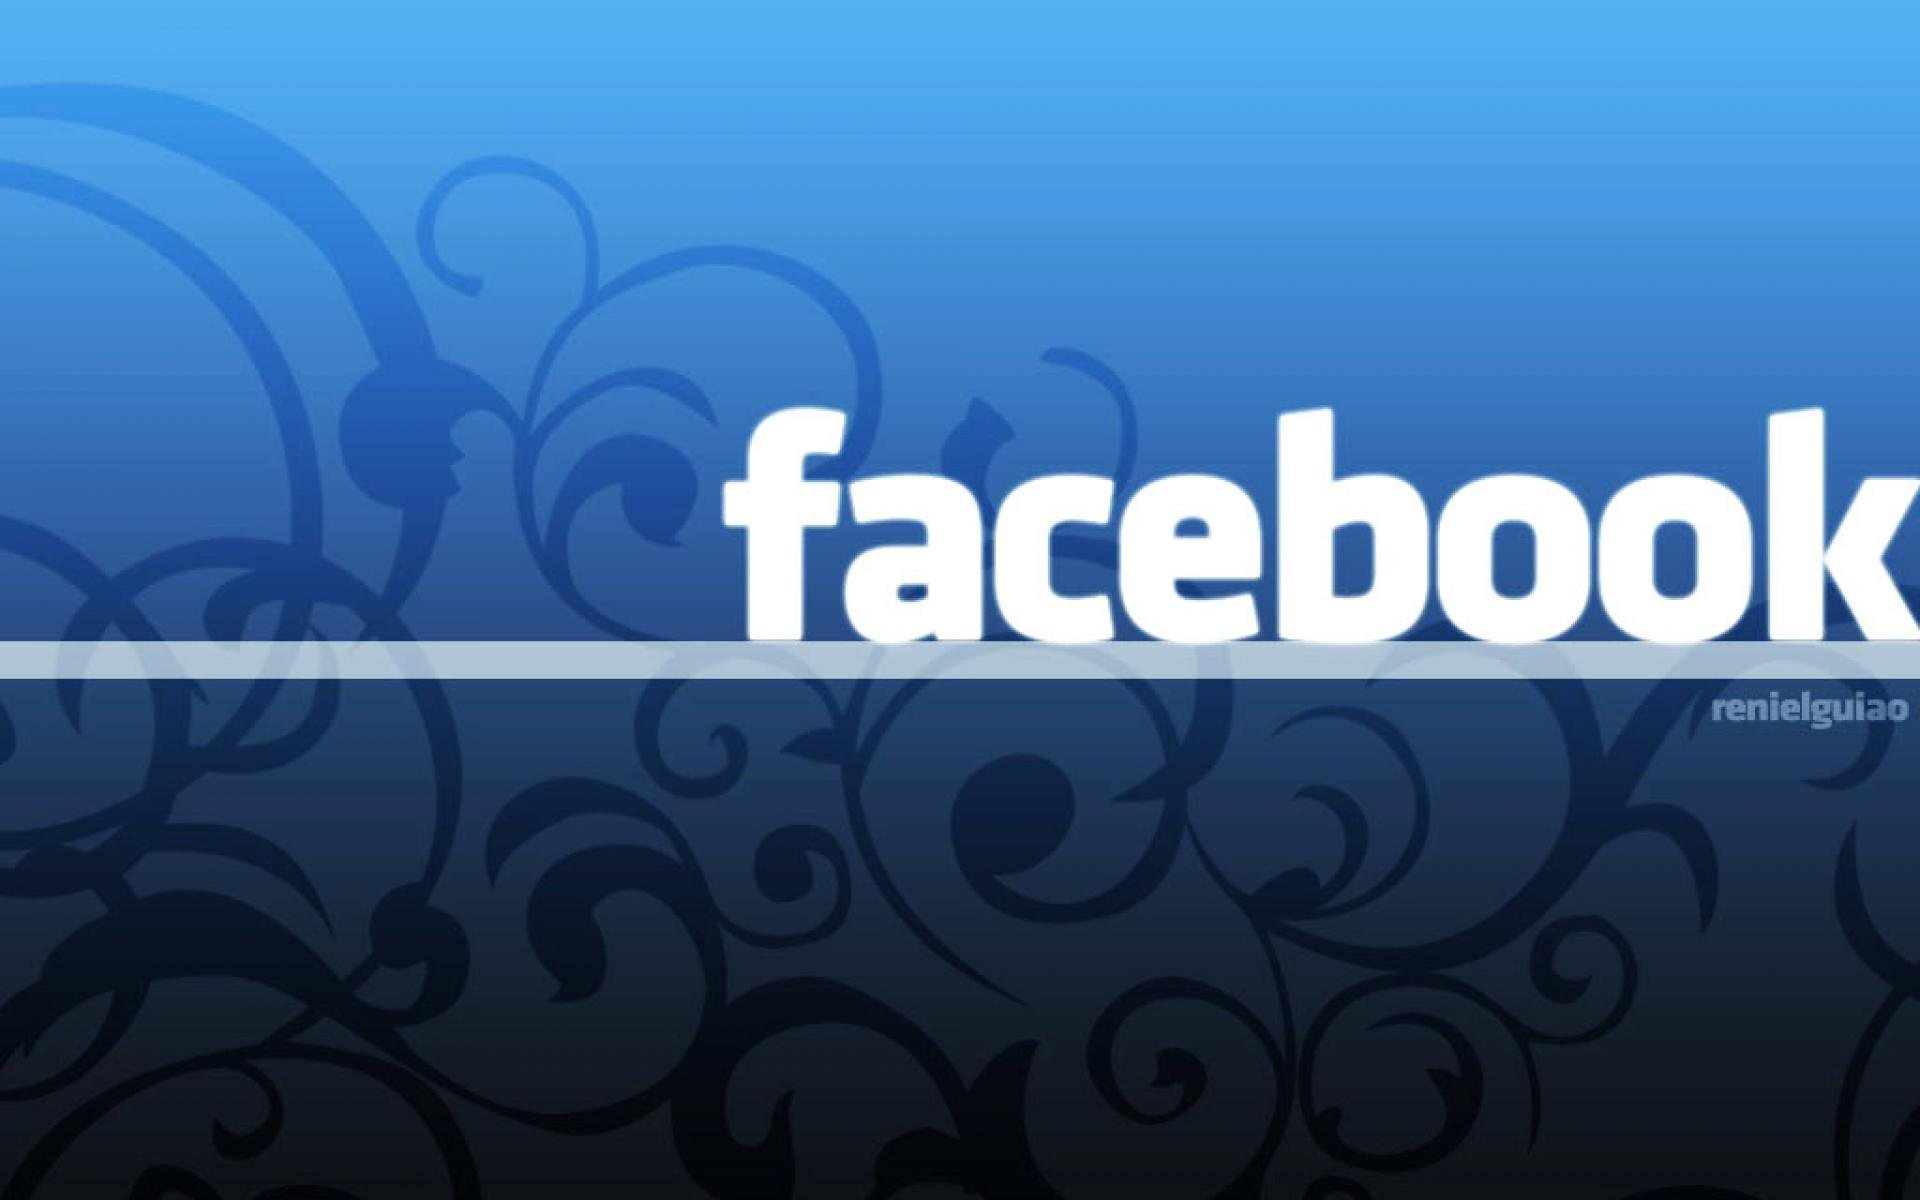 Wallpaper For Facebook Profile Picture